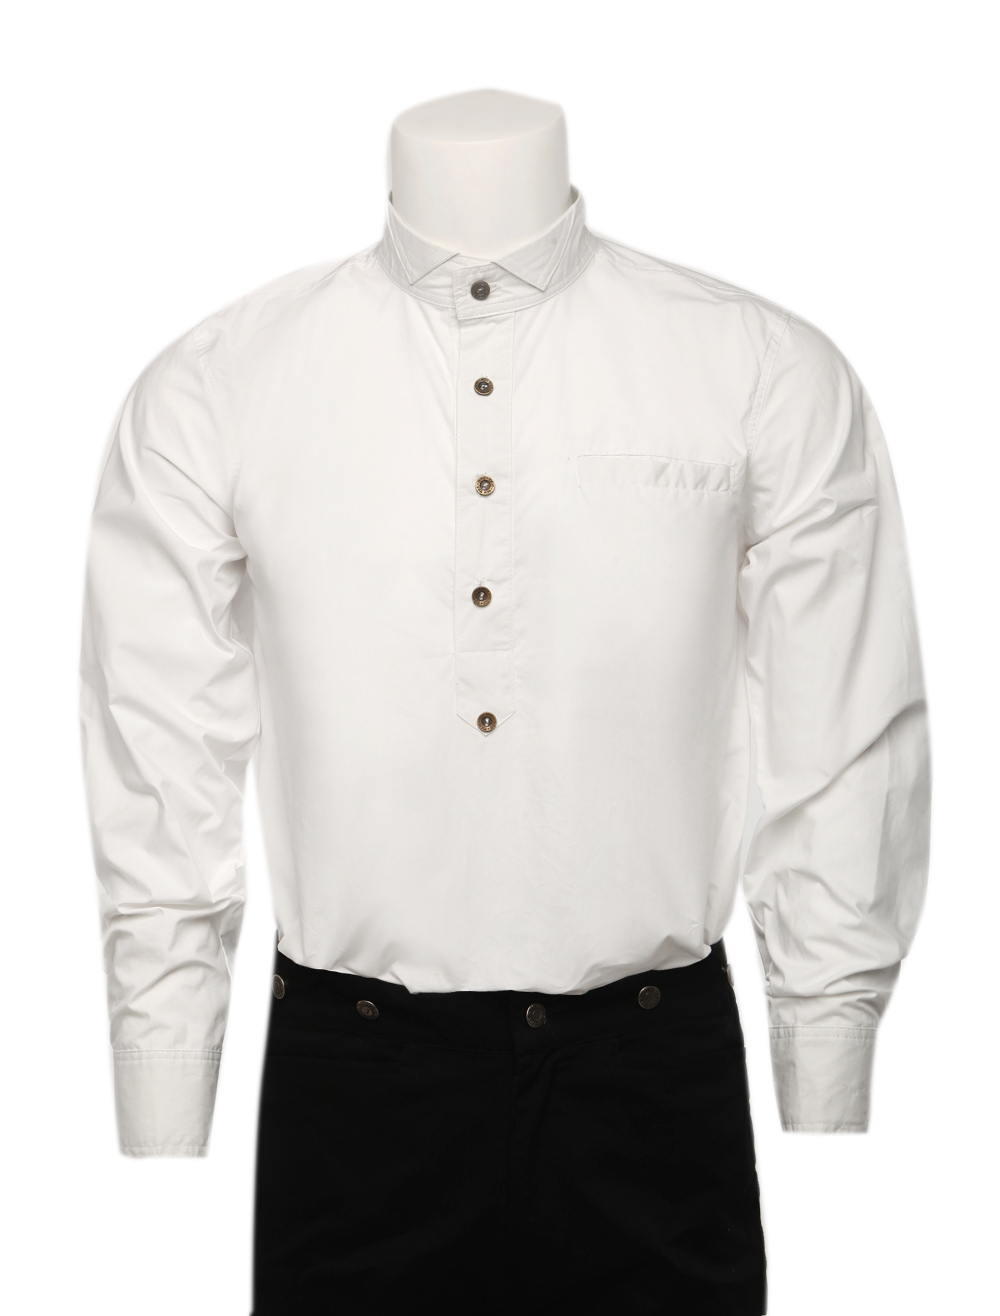 Buy Men's Vintage Costume Victorian White Shirt Retro Costume Top Halloween for $61.99 in Milanoo store